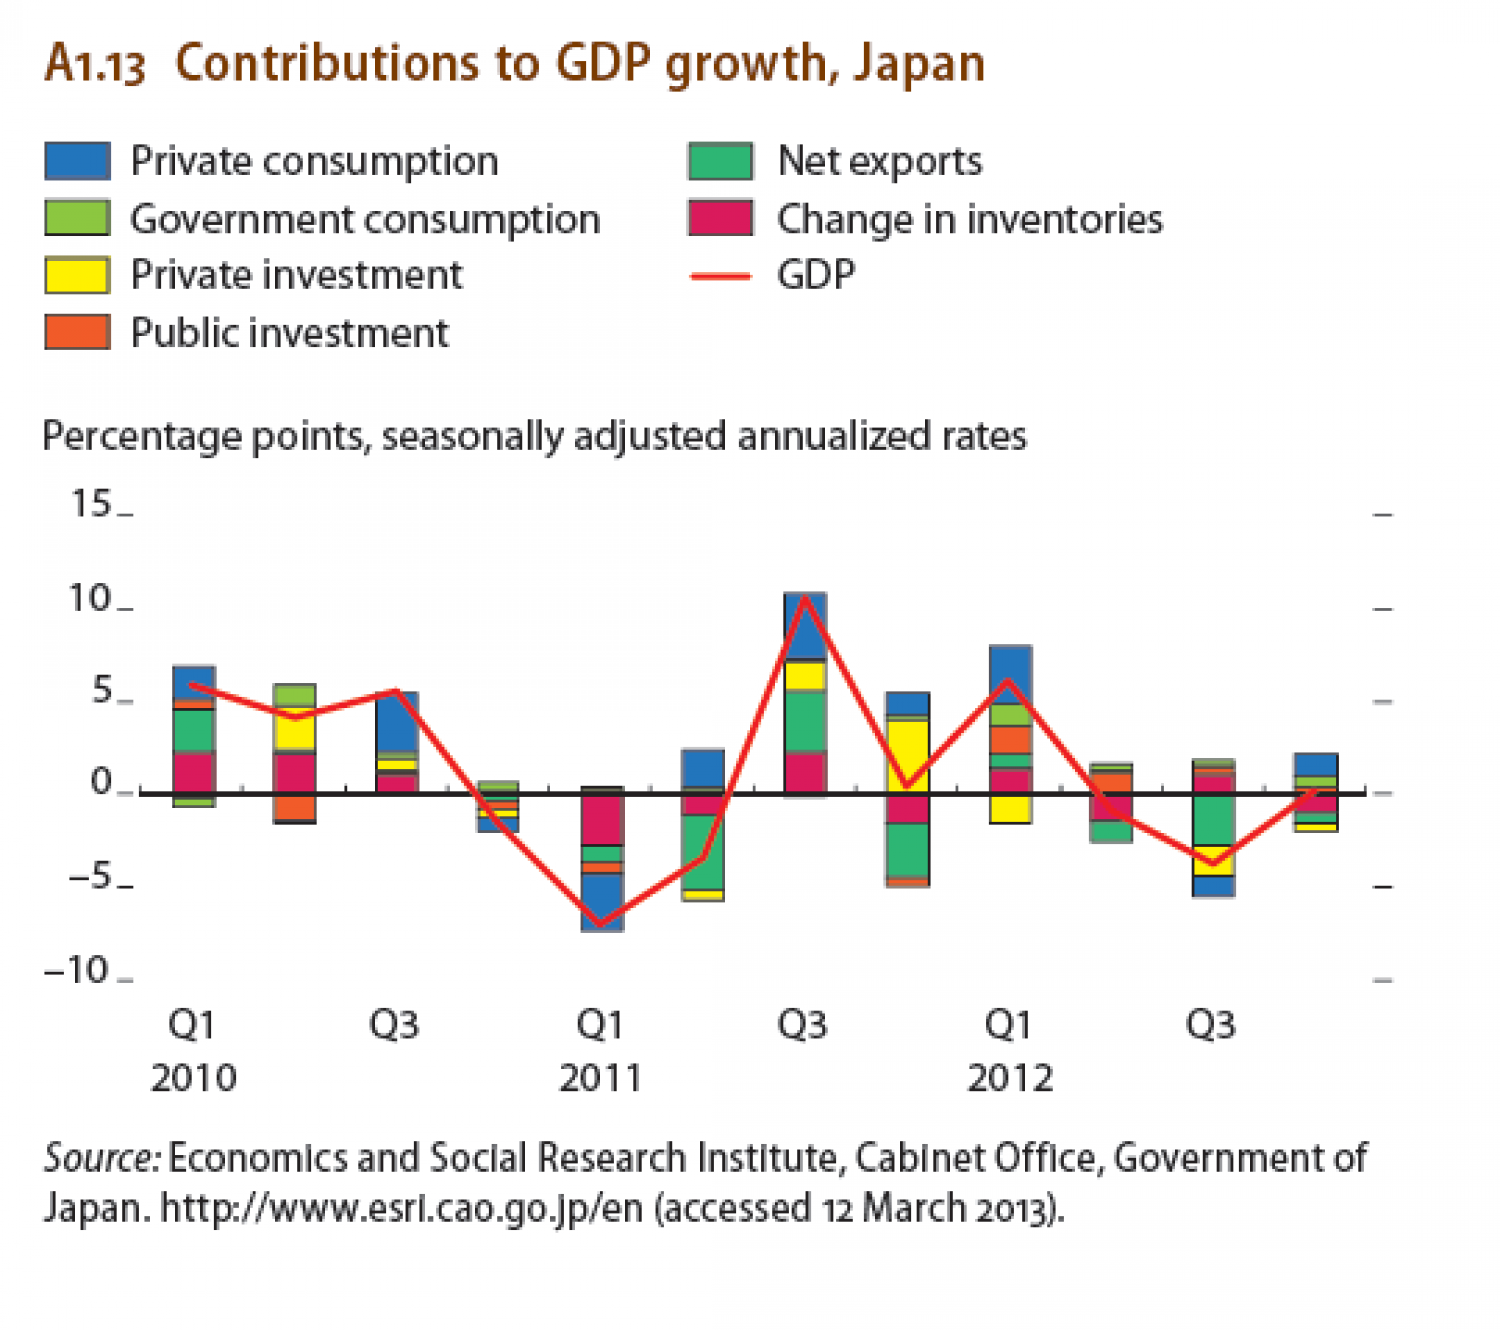 Contributions to GDP growth, Japan Infographic